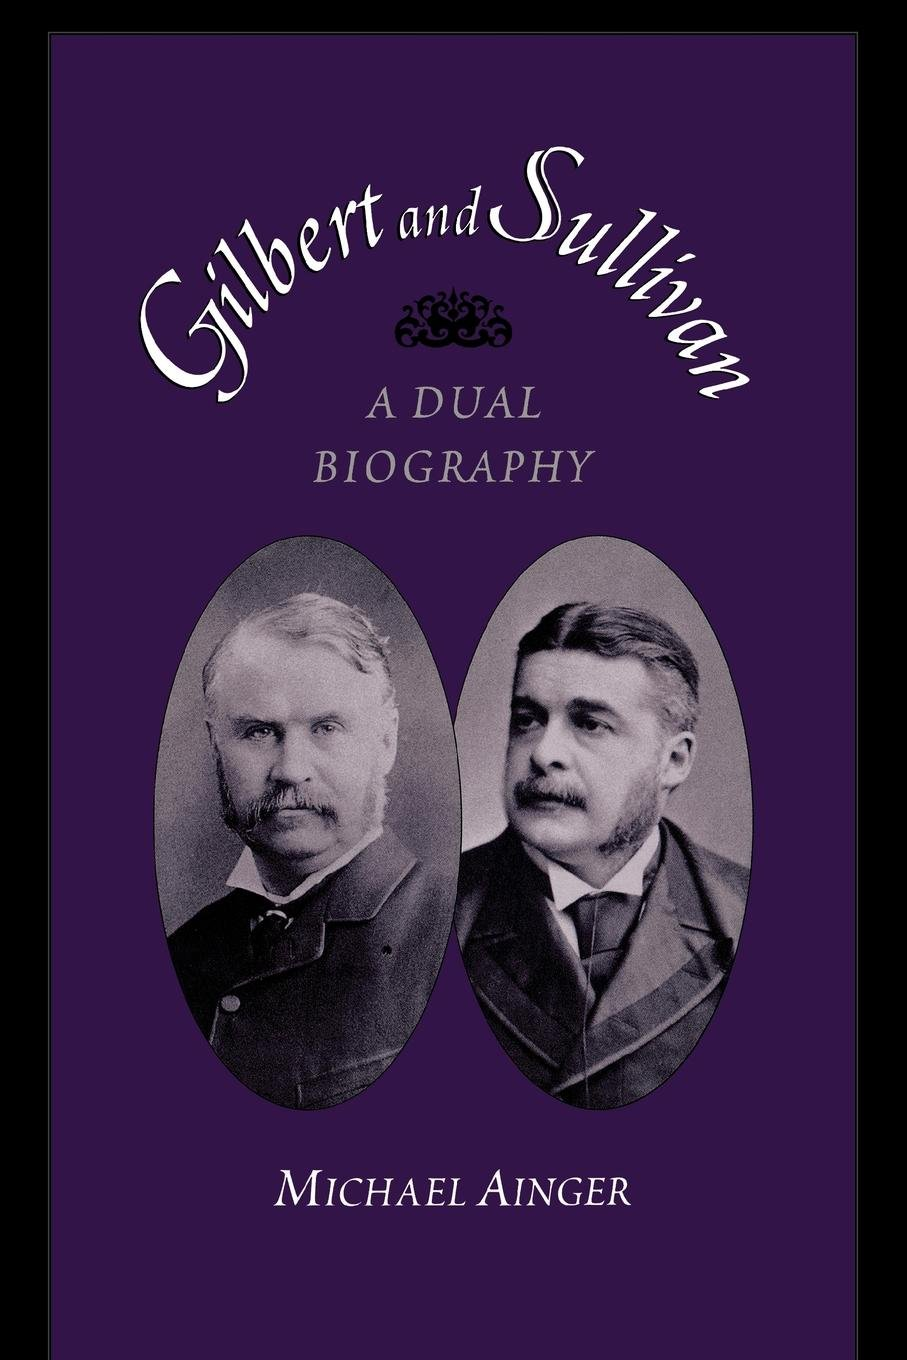 Gilbert and Sullivan: A Dual Biography by Oxford University Press